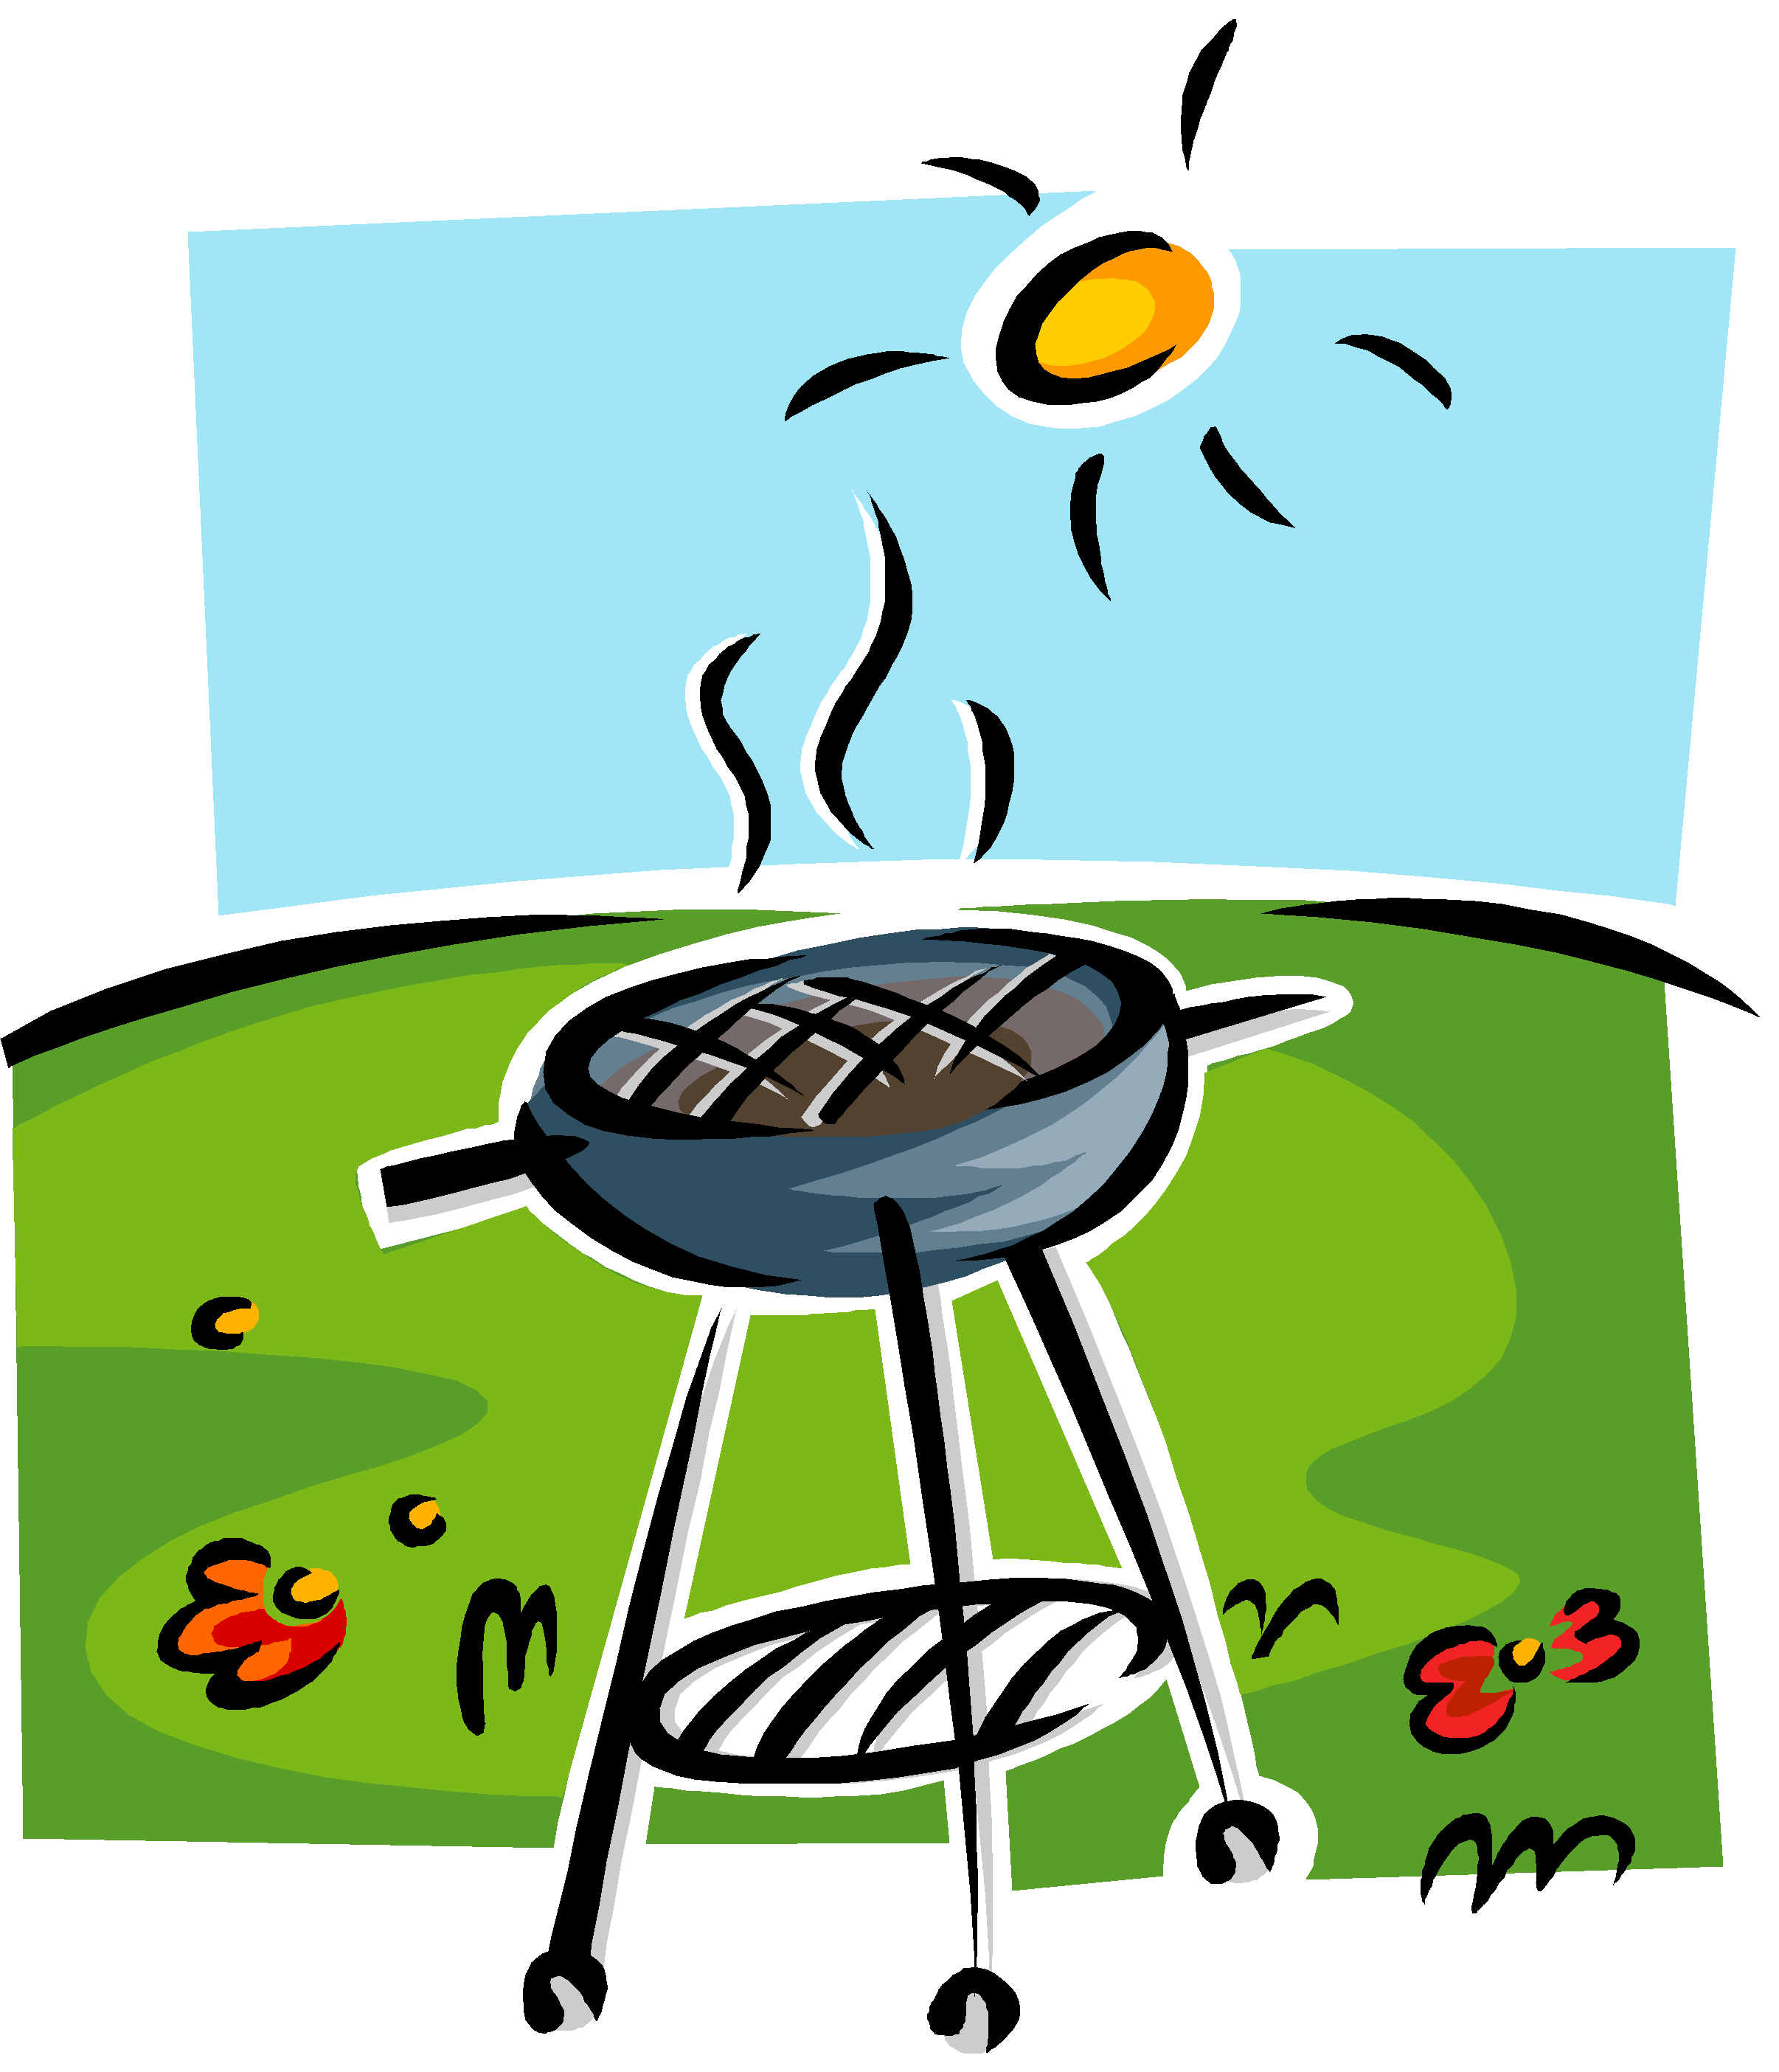 Bbq drawing at getdrawings. Grill clipart outdoor grill clip art